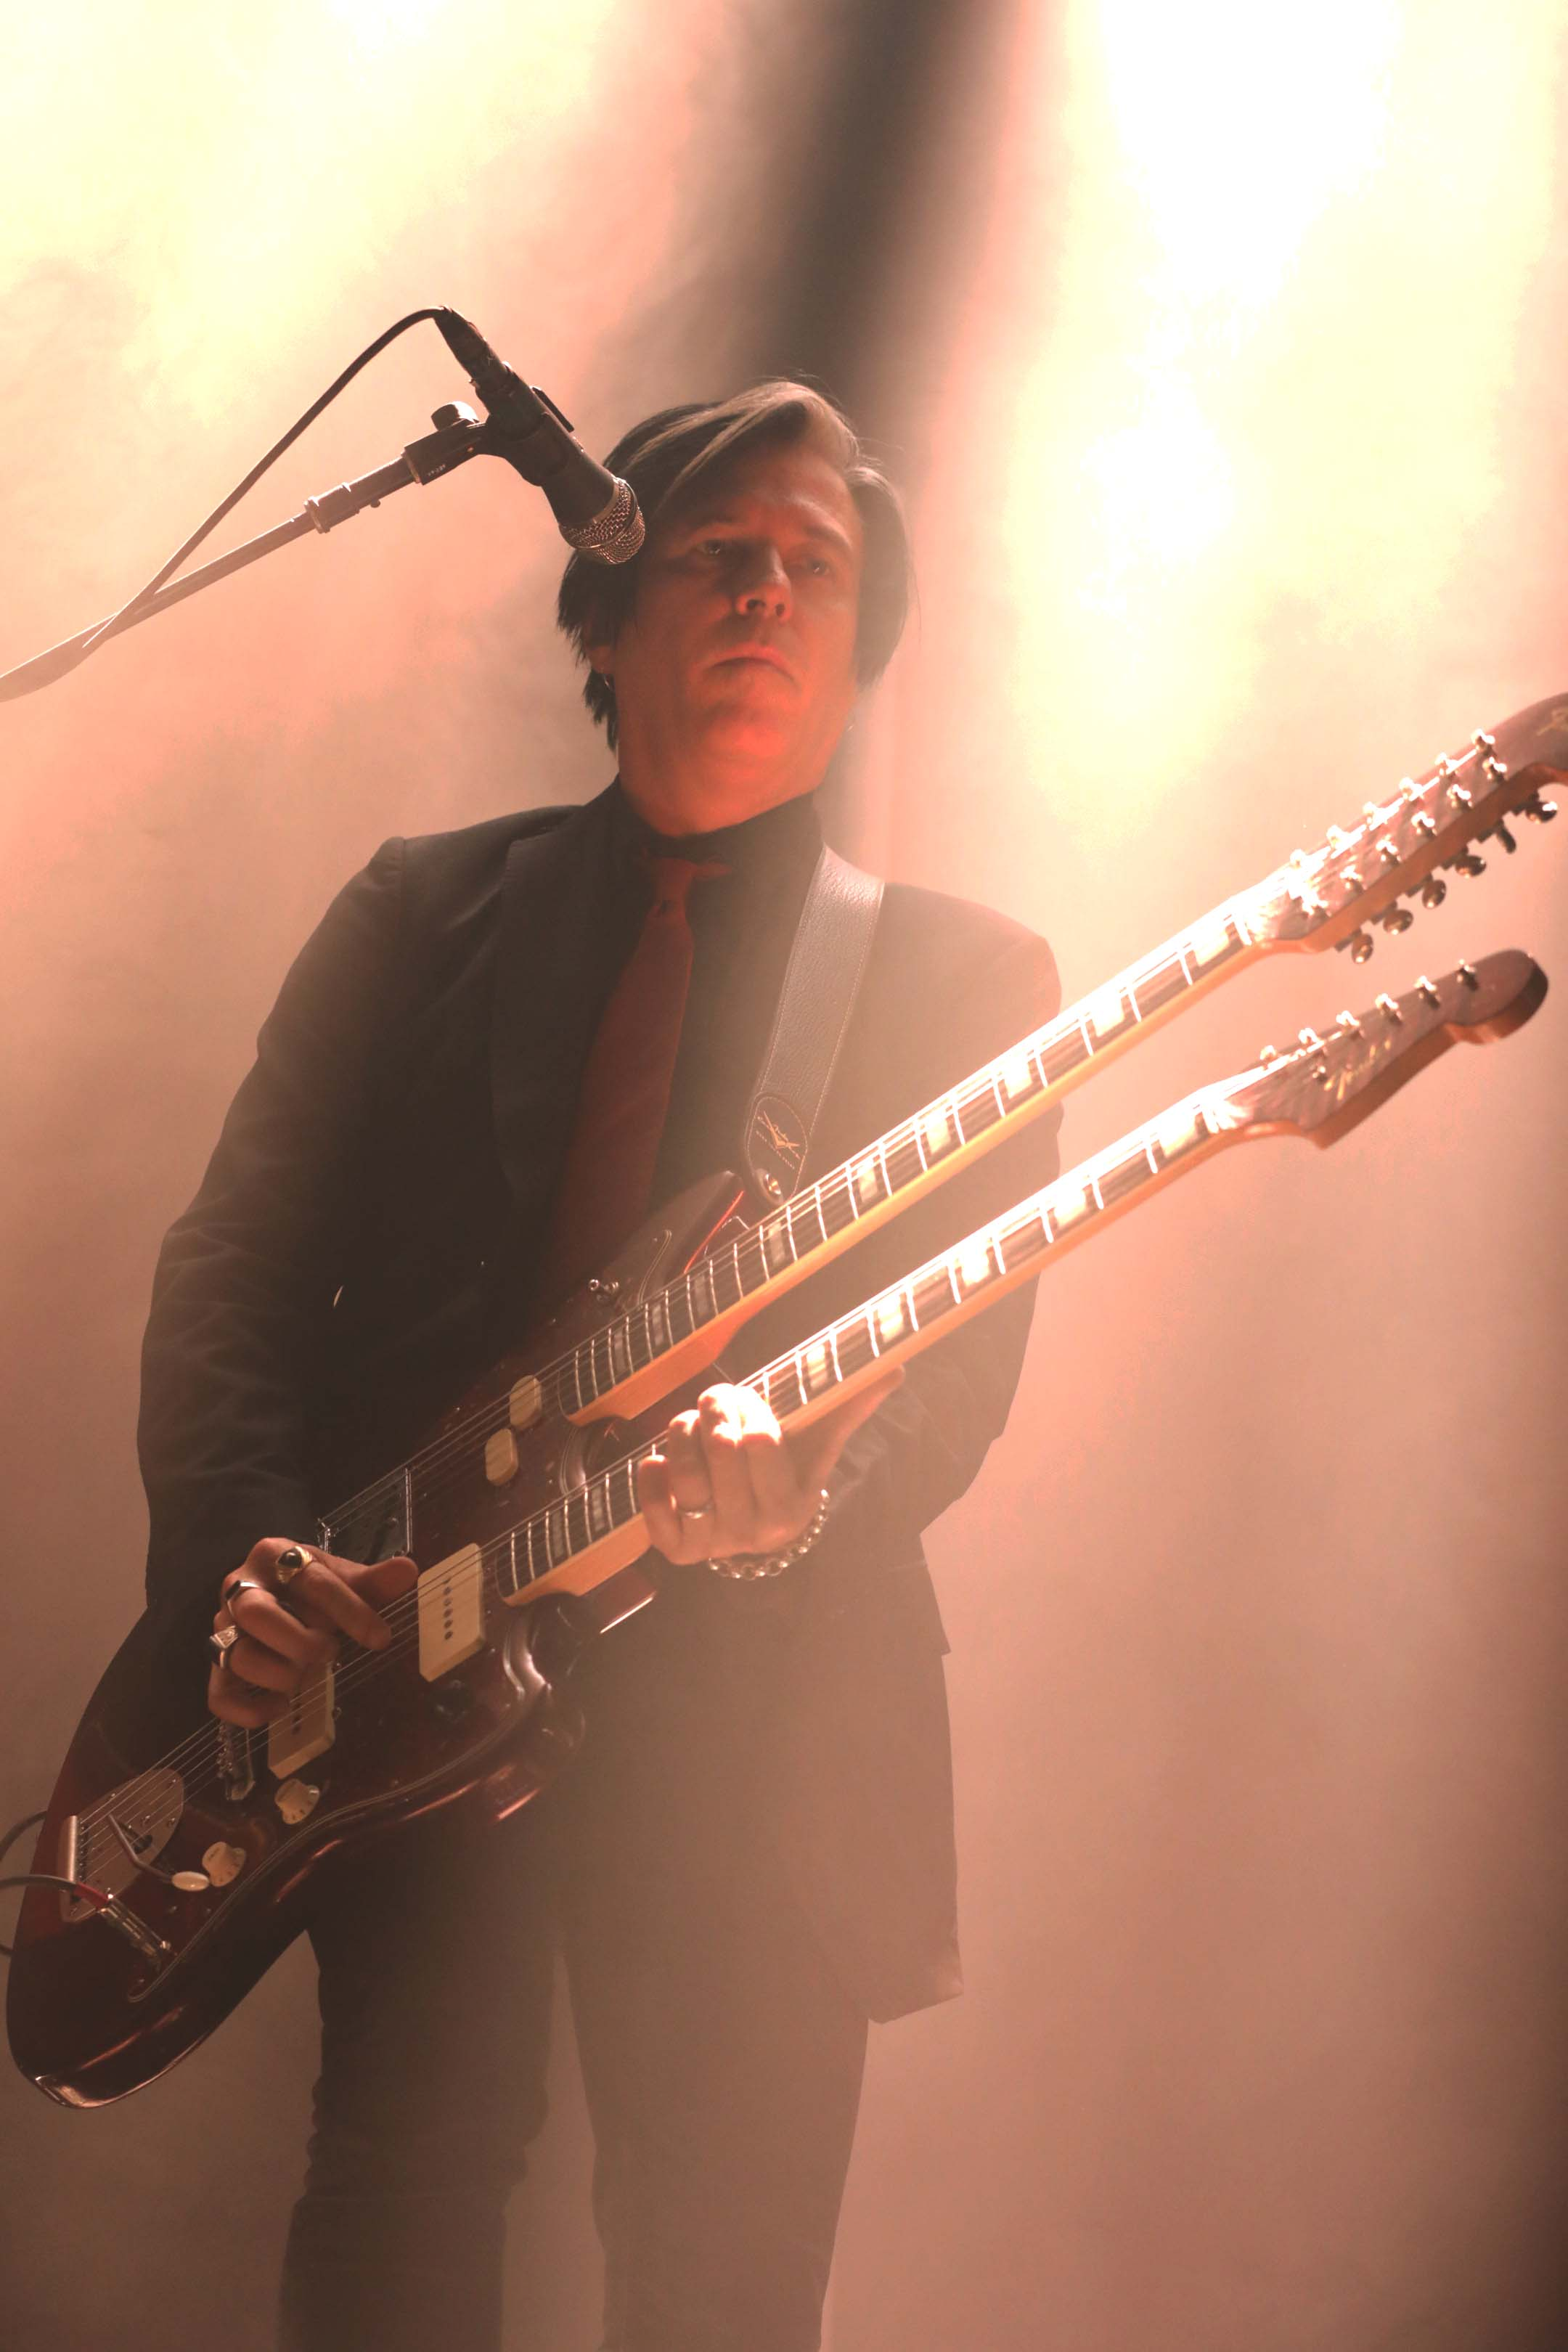 Double neck guitar being played by Troy Van Leeuwen. Photo: Lmsorenson.net